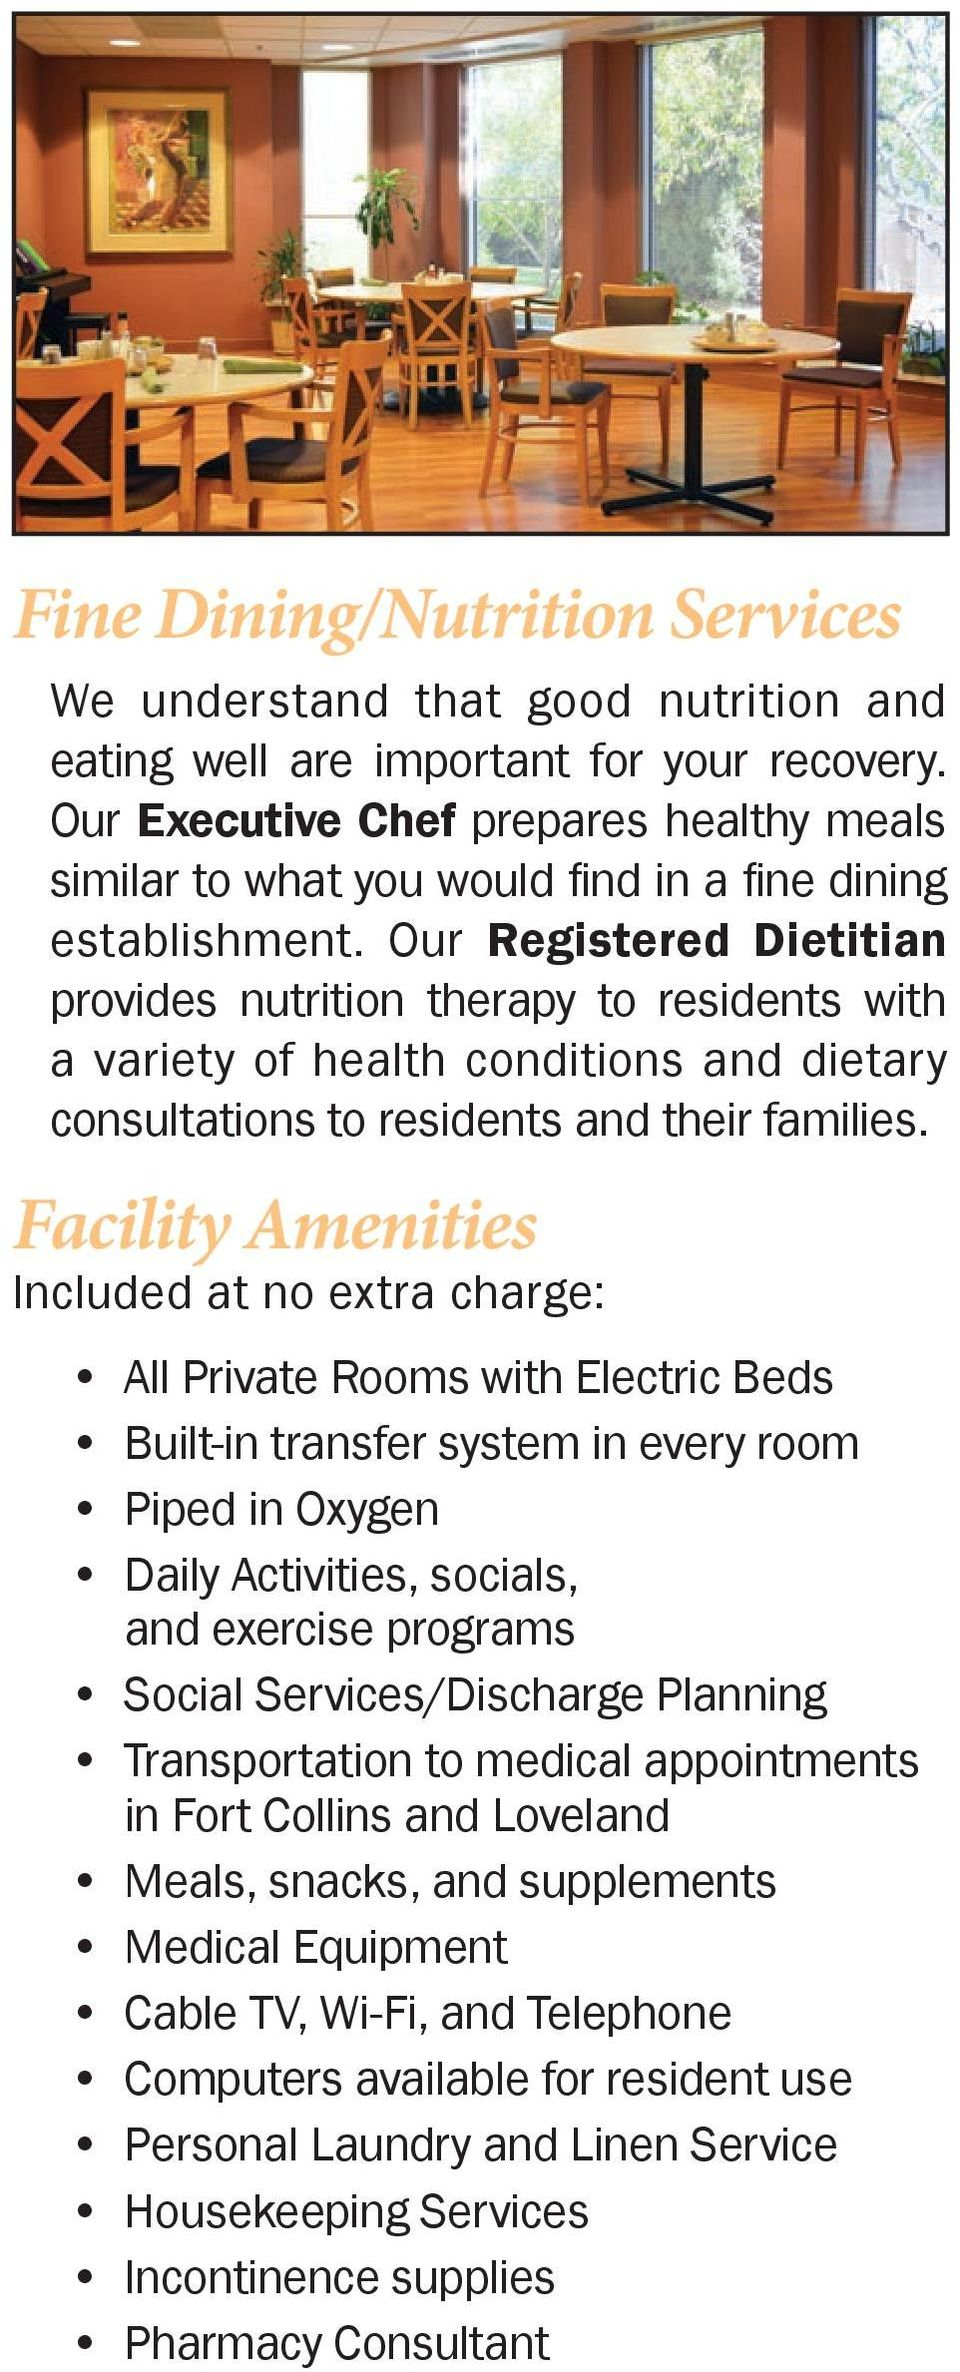 Our Registered Dietitian provides nutrition therapy to residents with a variety of health conditions and dietary consultations to residents and their families.